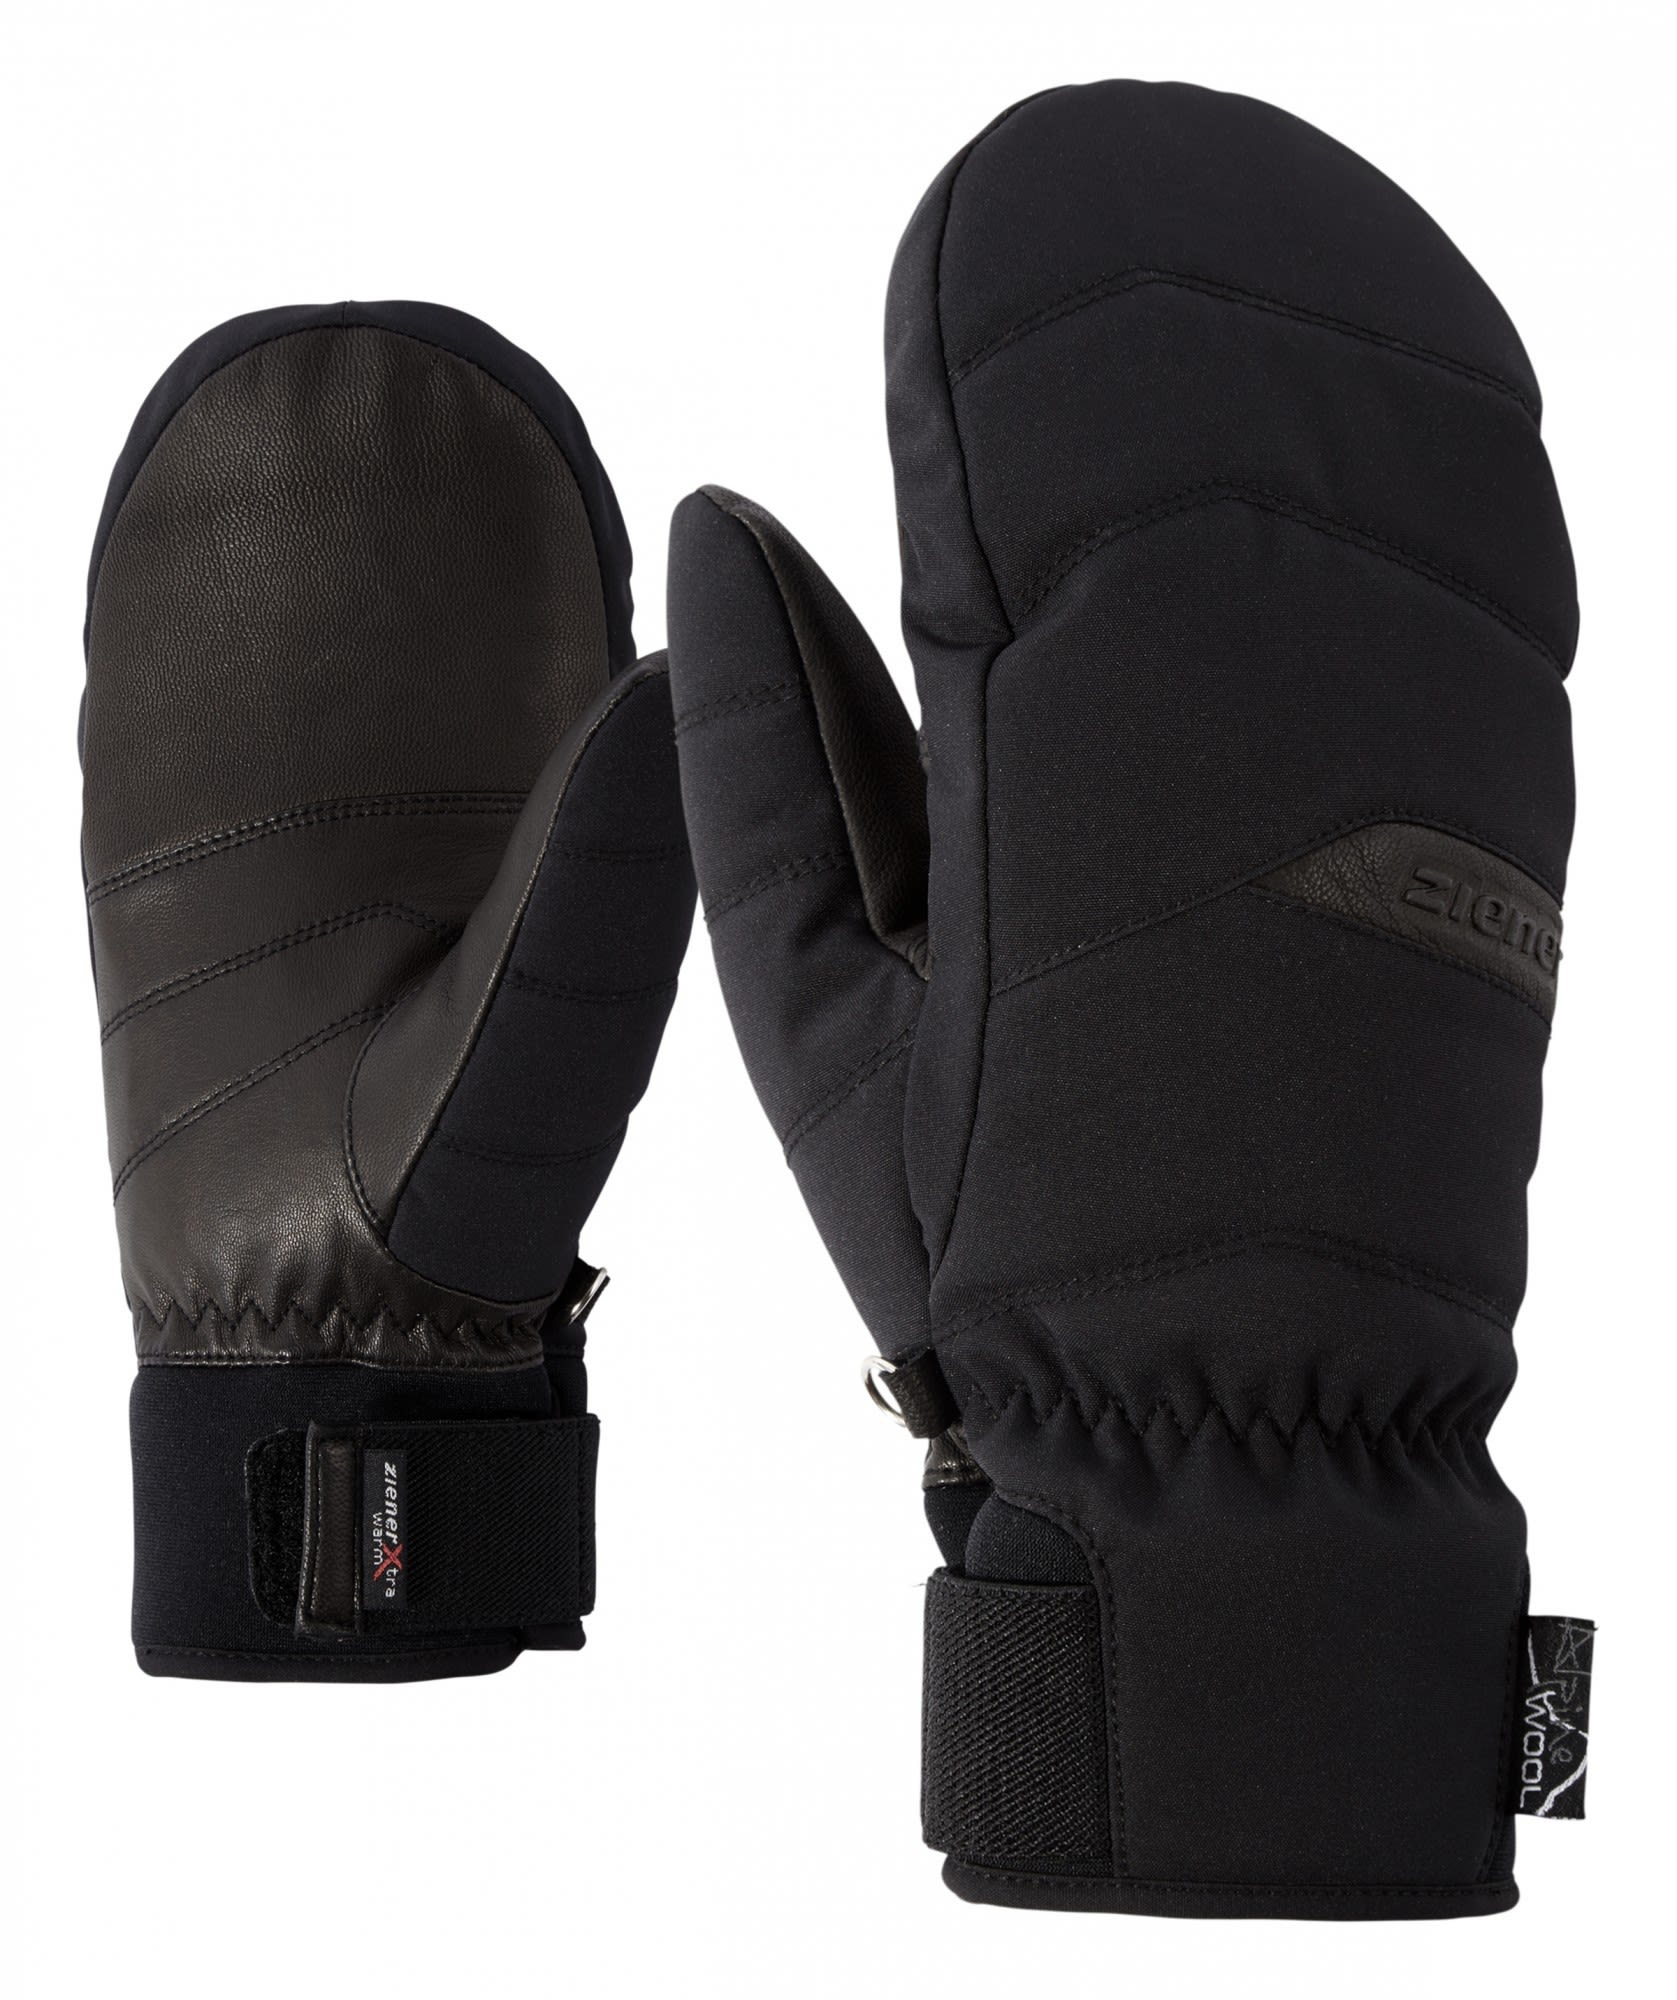 Ziener Komilla AS AW Mitten (Modell Winter 2017) Schwarz, Female Accessoires, 6.